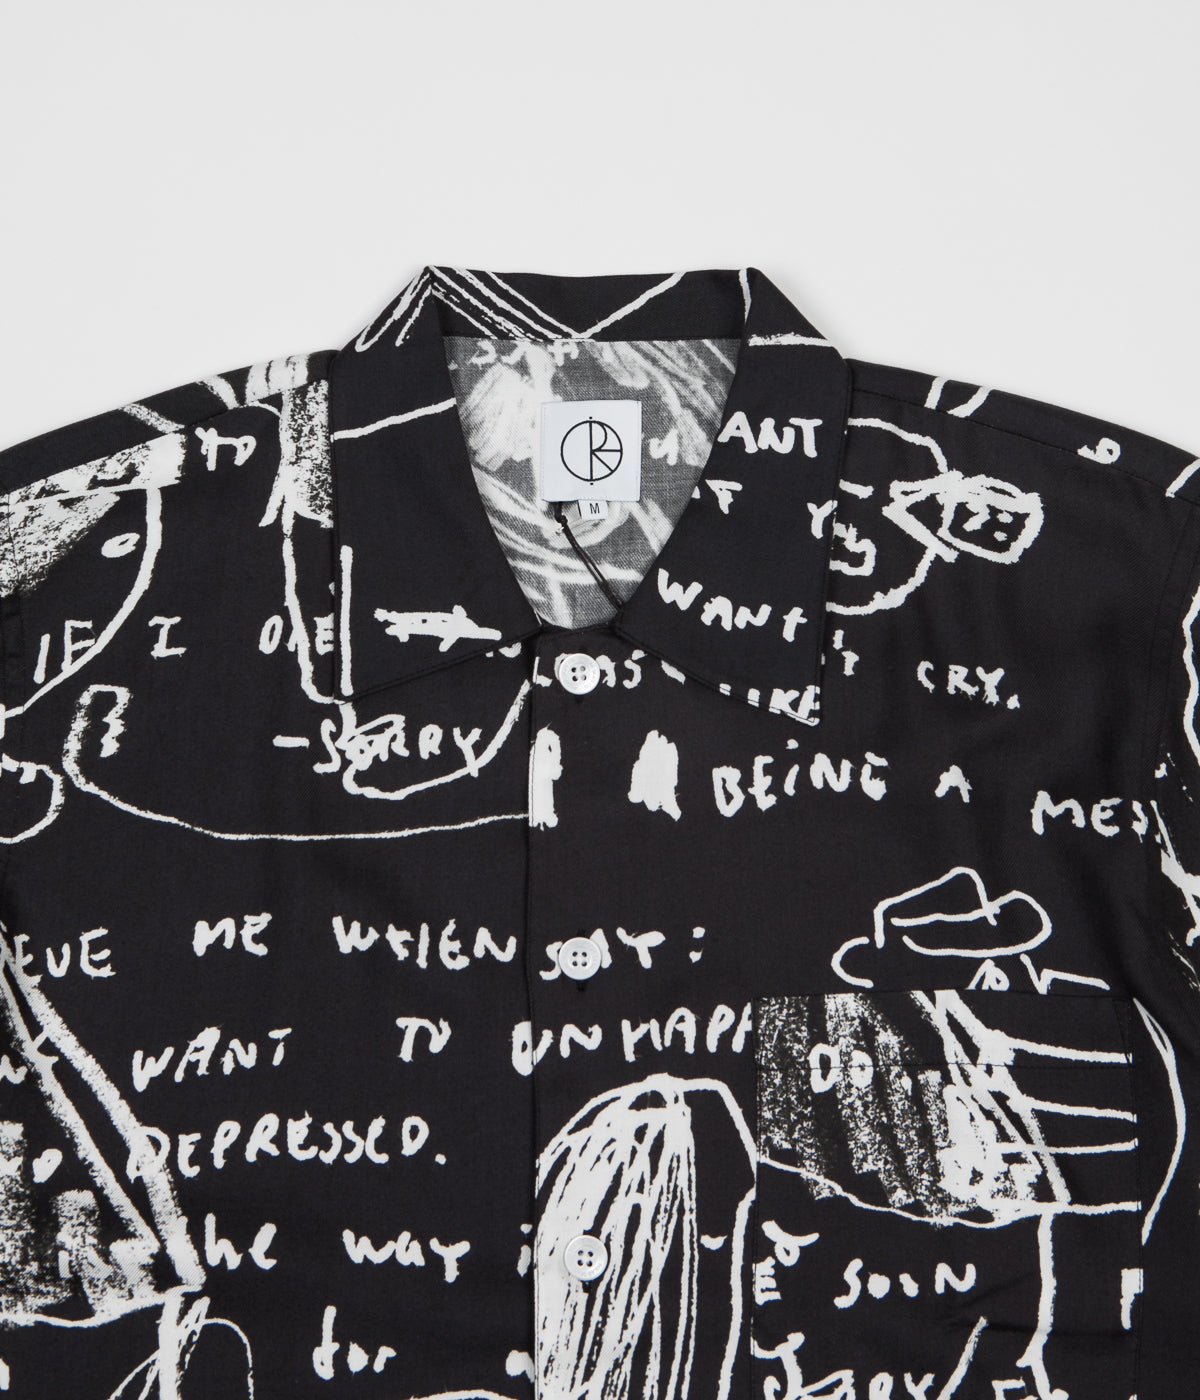 Polar Alv Art Shirt - Black / White